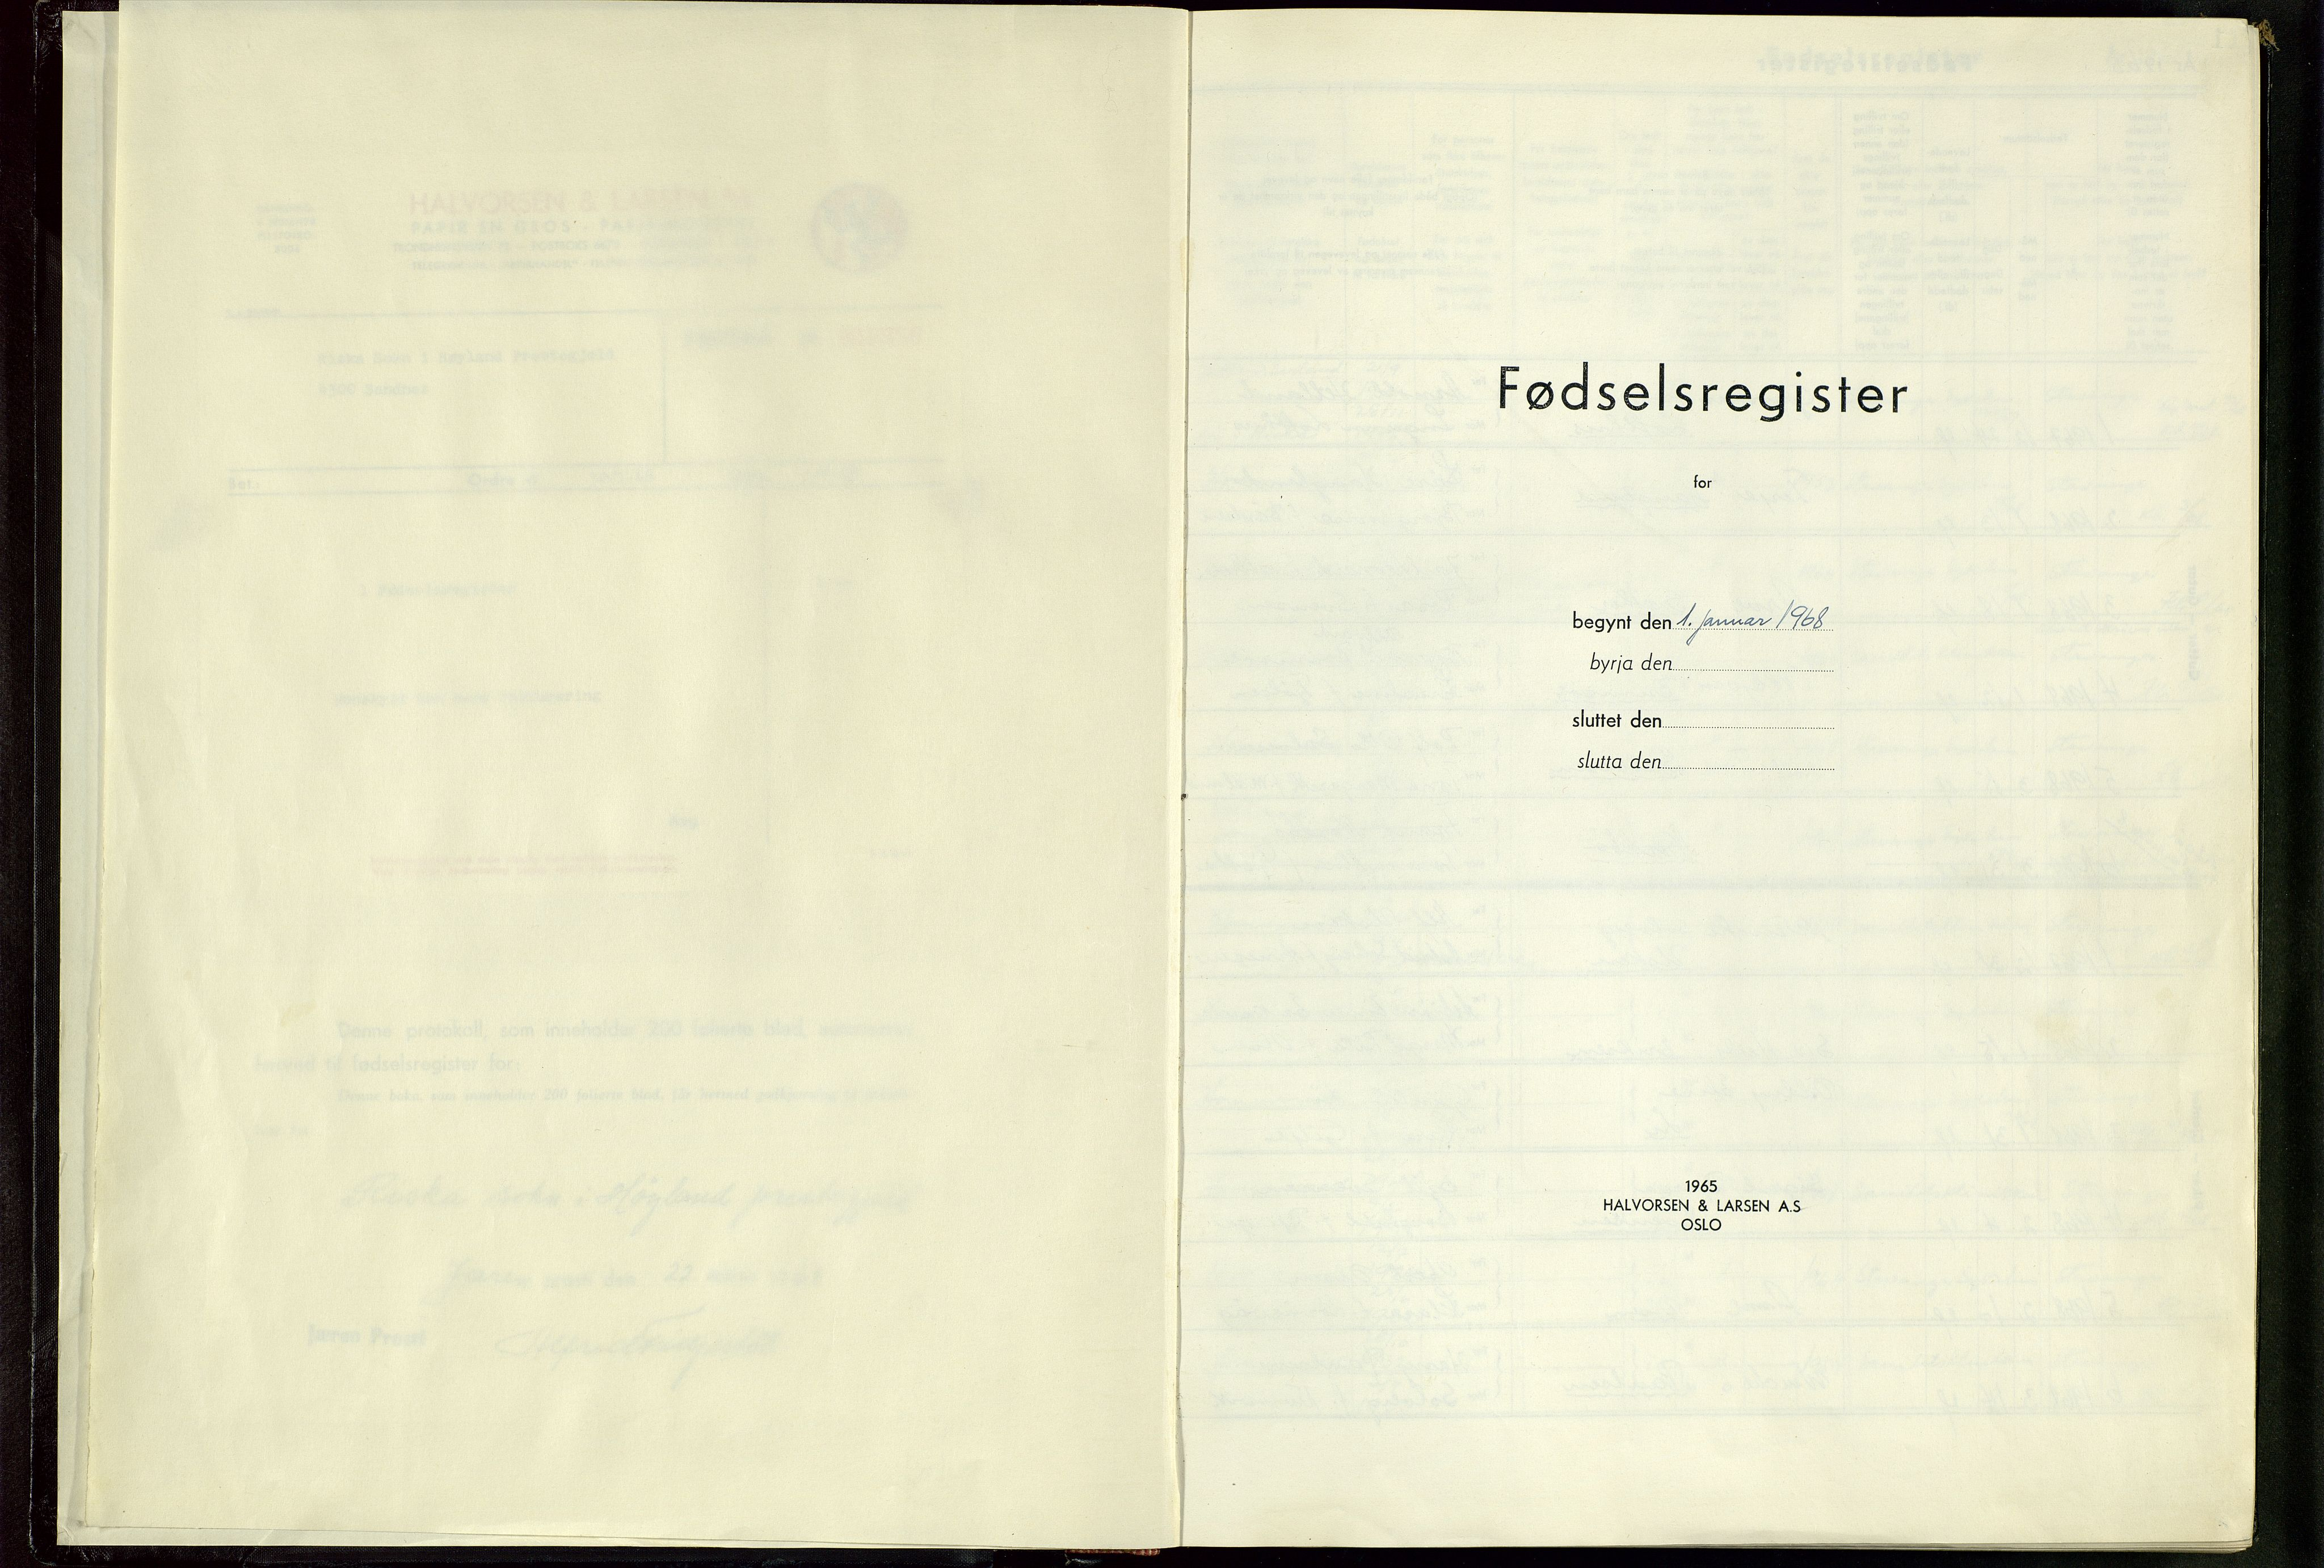 SAST, Høyland sokneprestkontor, 704BA/L0001: Birth register no. 1, 1968-1982